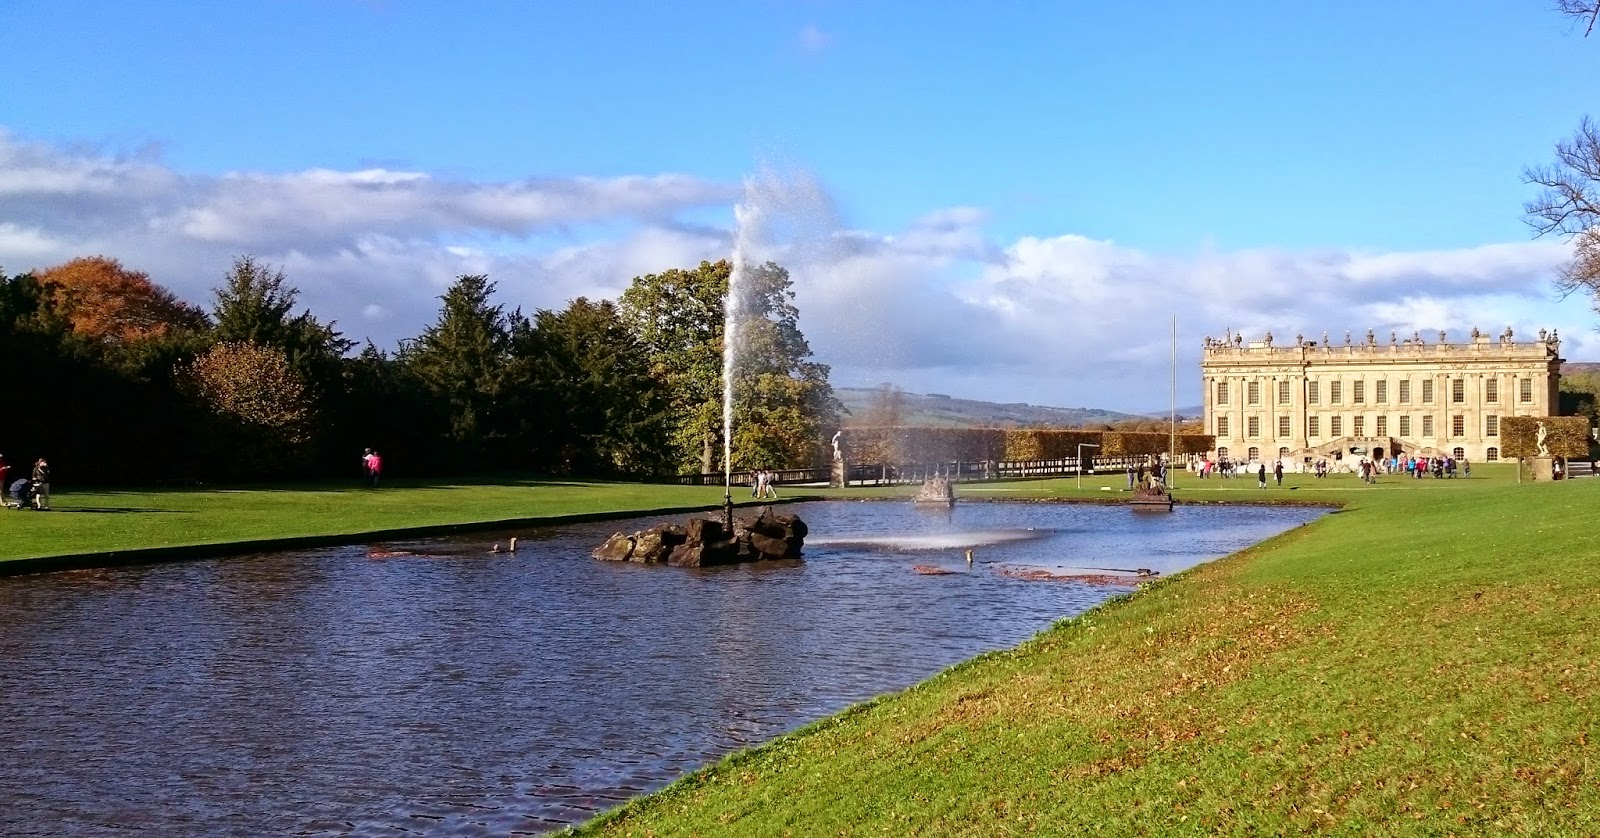 The Emperor Fountain with Chatsworth House in the background